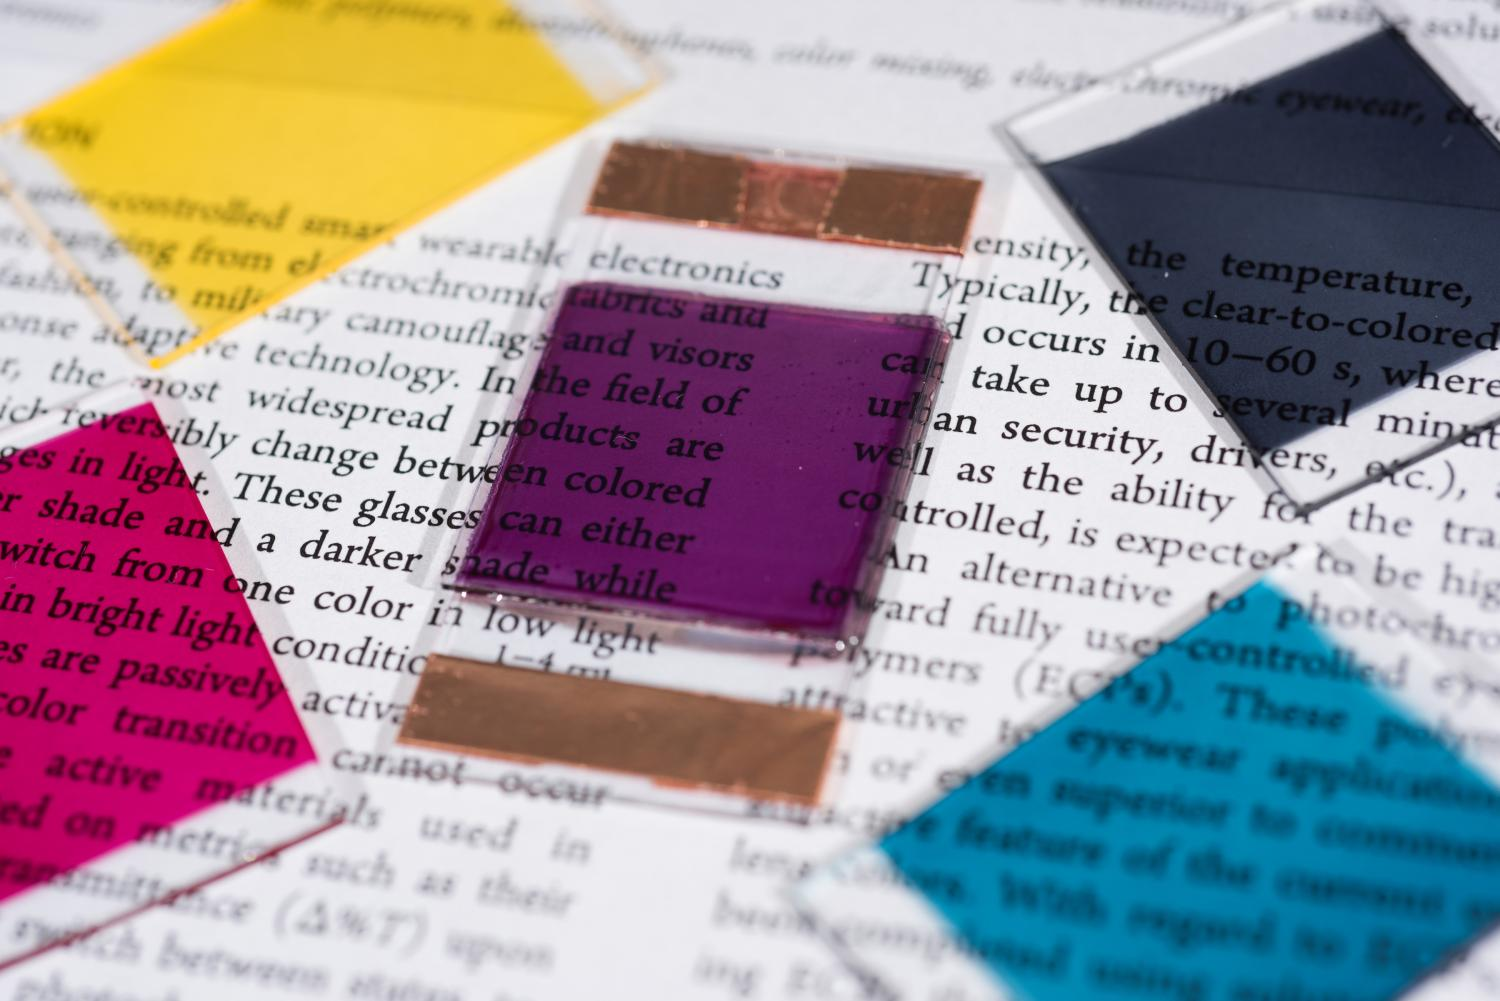 Electrochromic polymers create broad color palette for ...